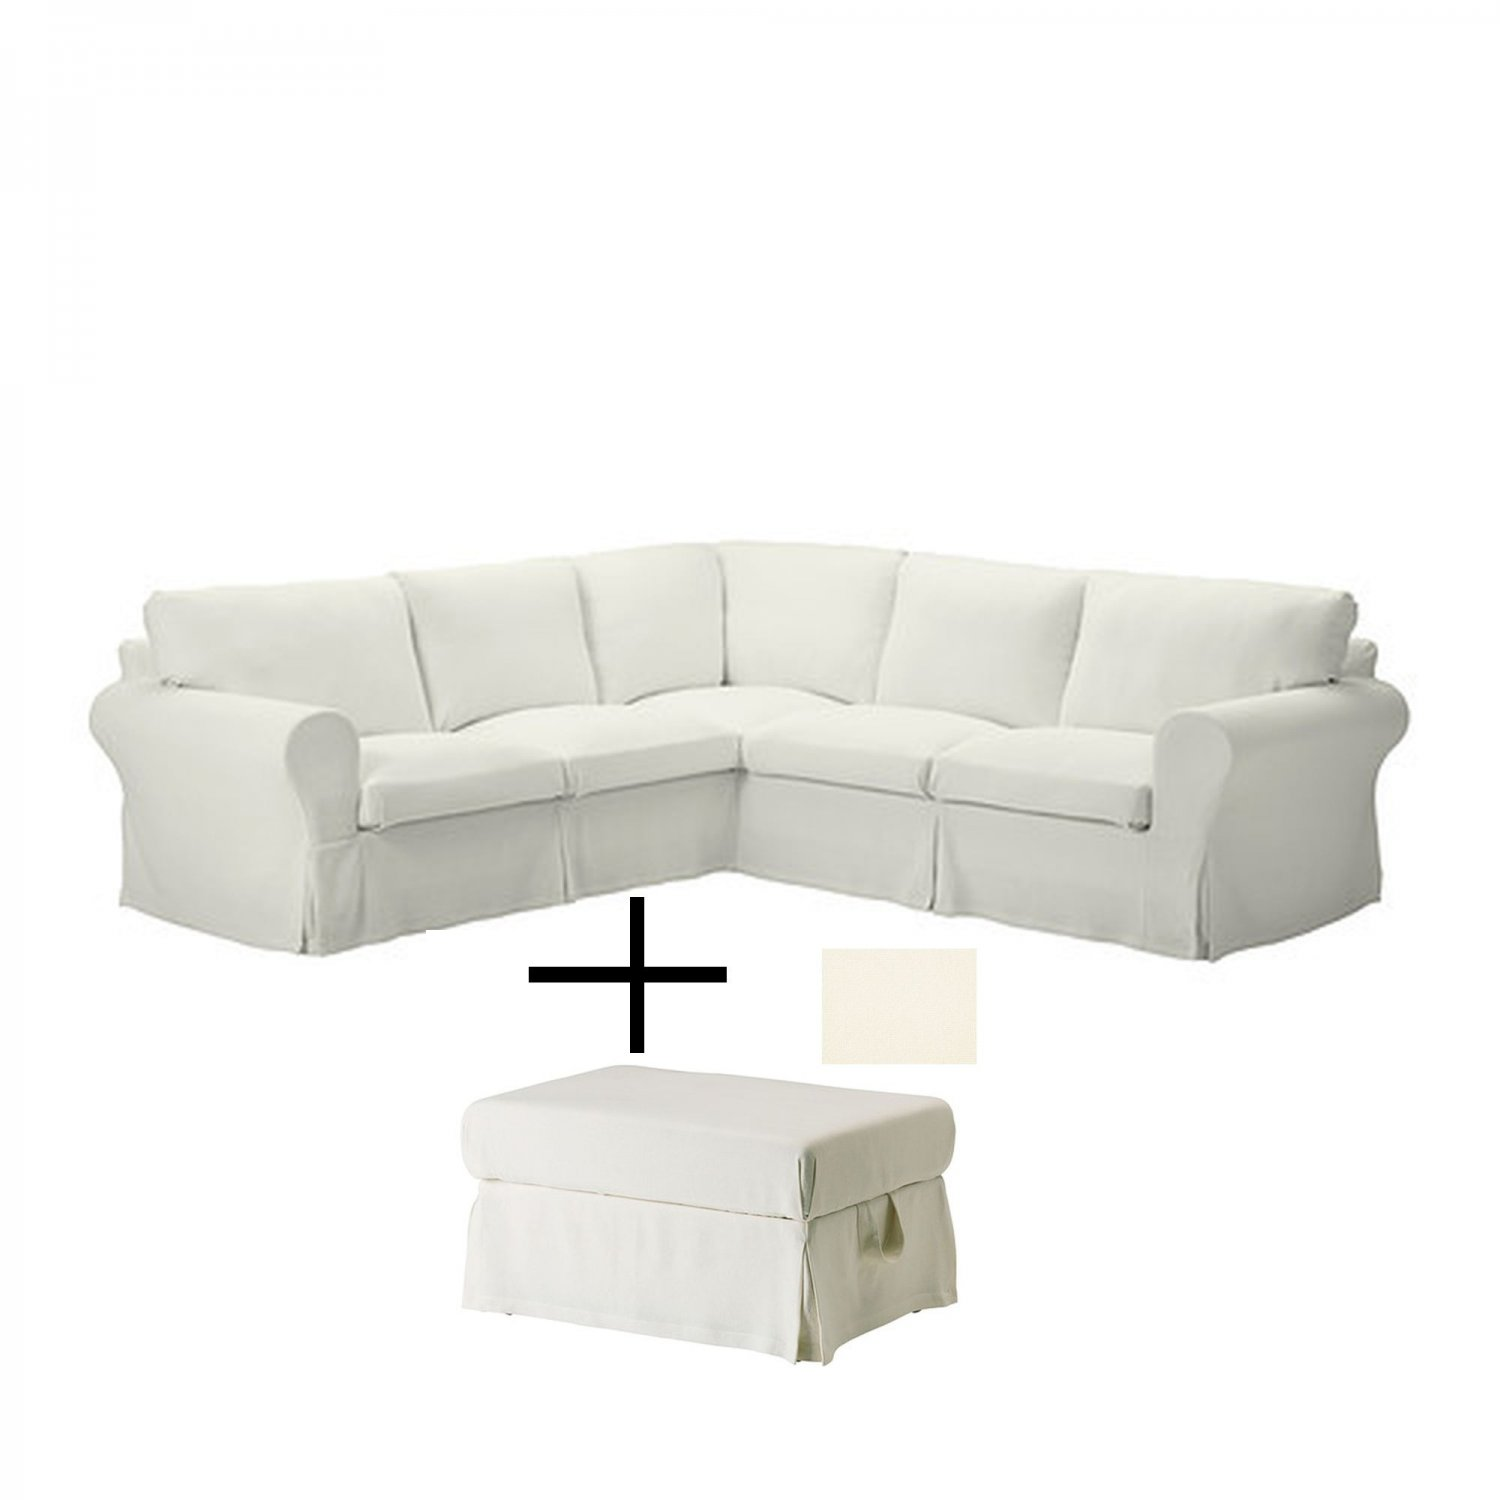 Ikea ektorp corner sofa and footstool slipcovers stenasa for Ikea corner sofa